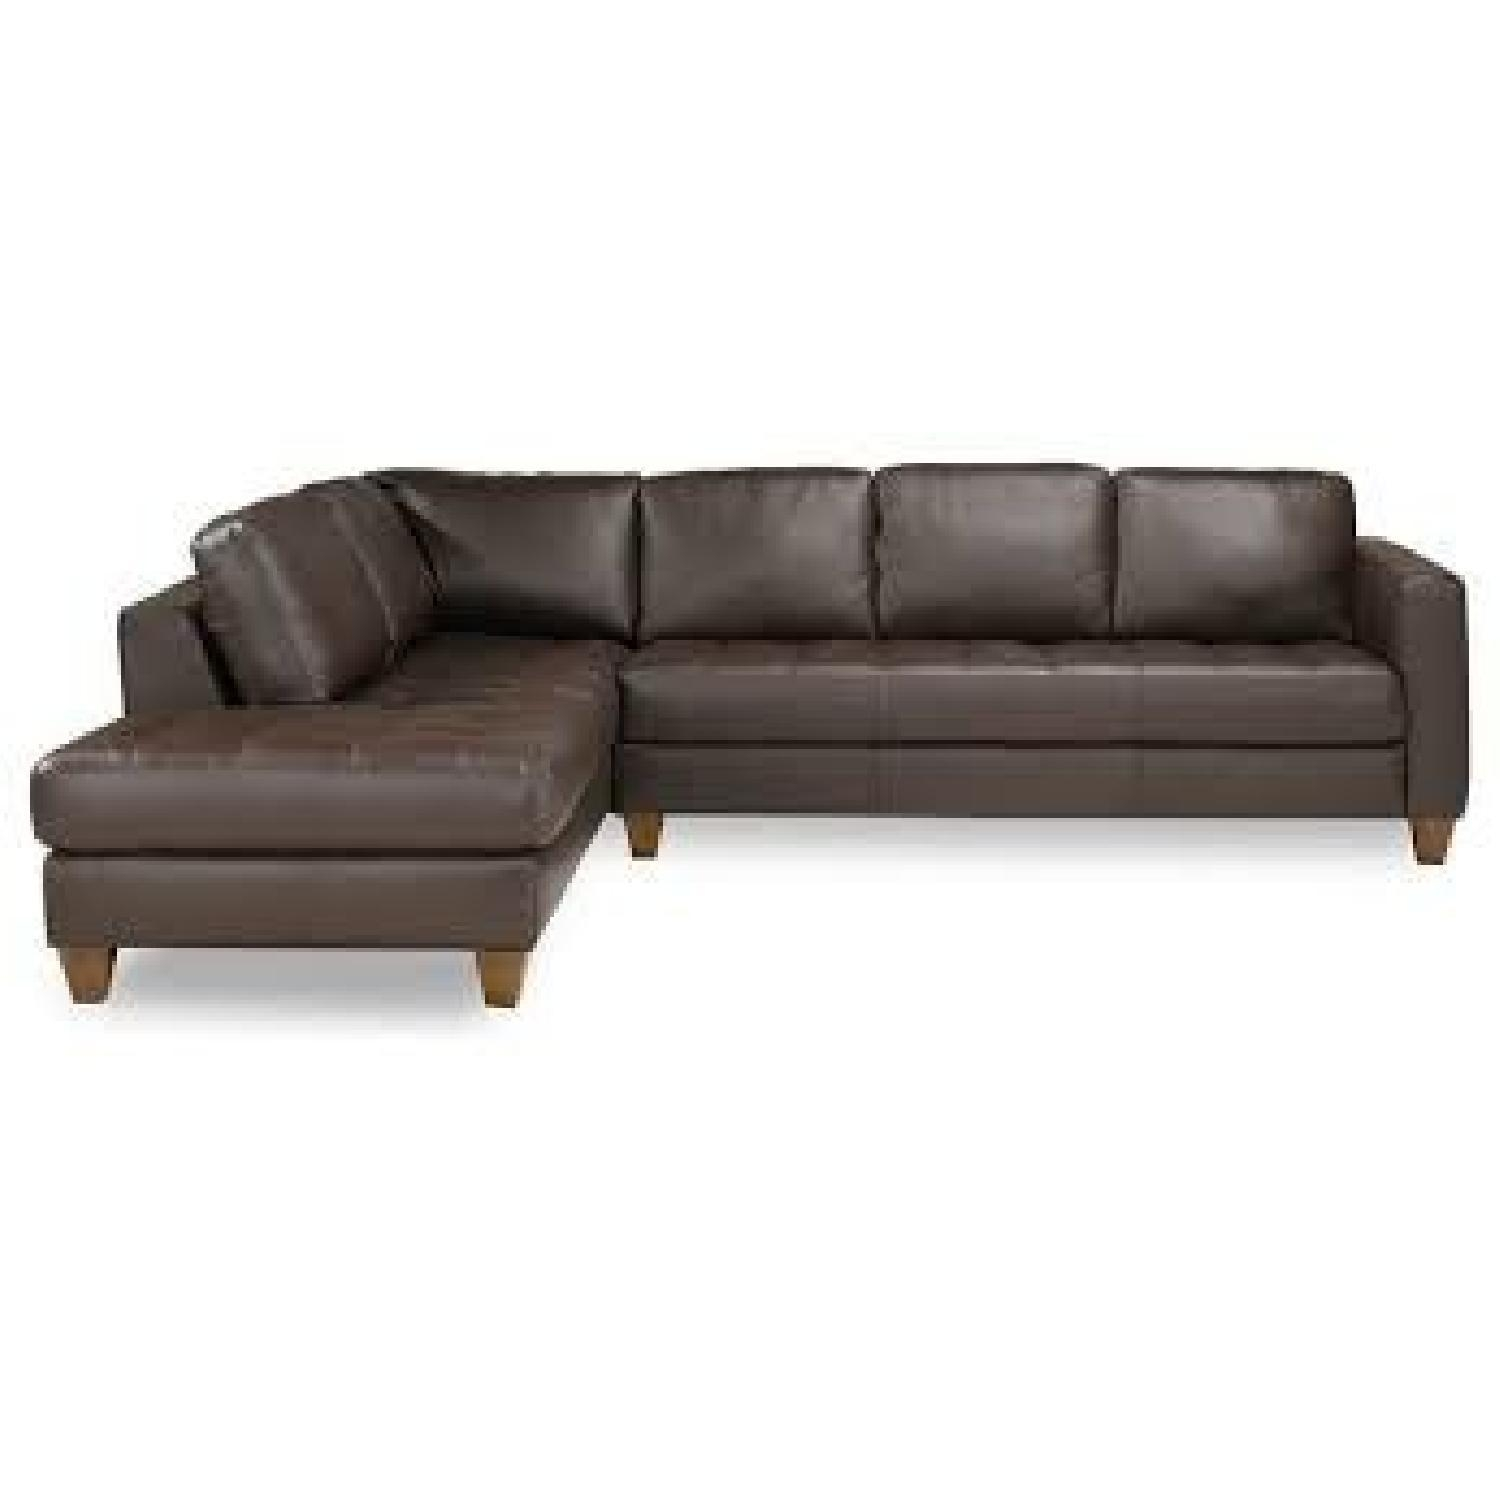 20 Best Collection Of Macys Sofas Sofa Ideas